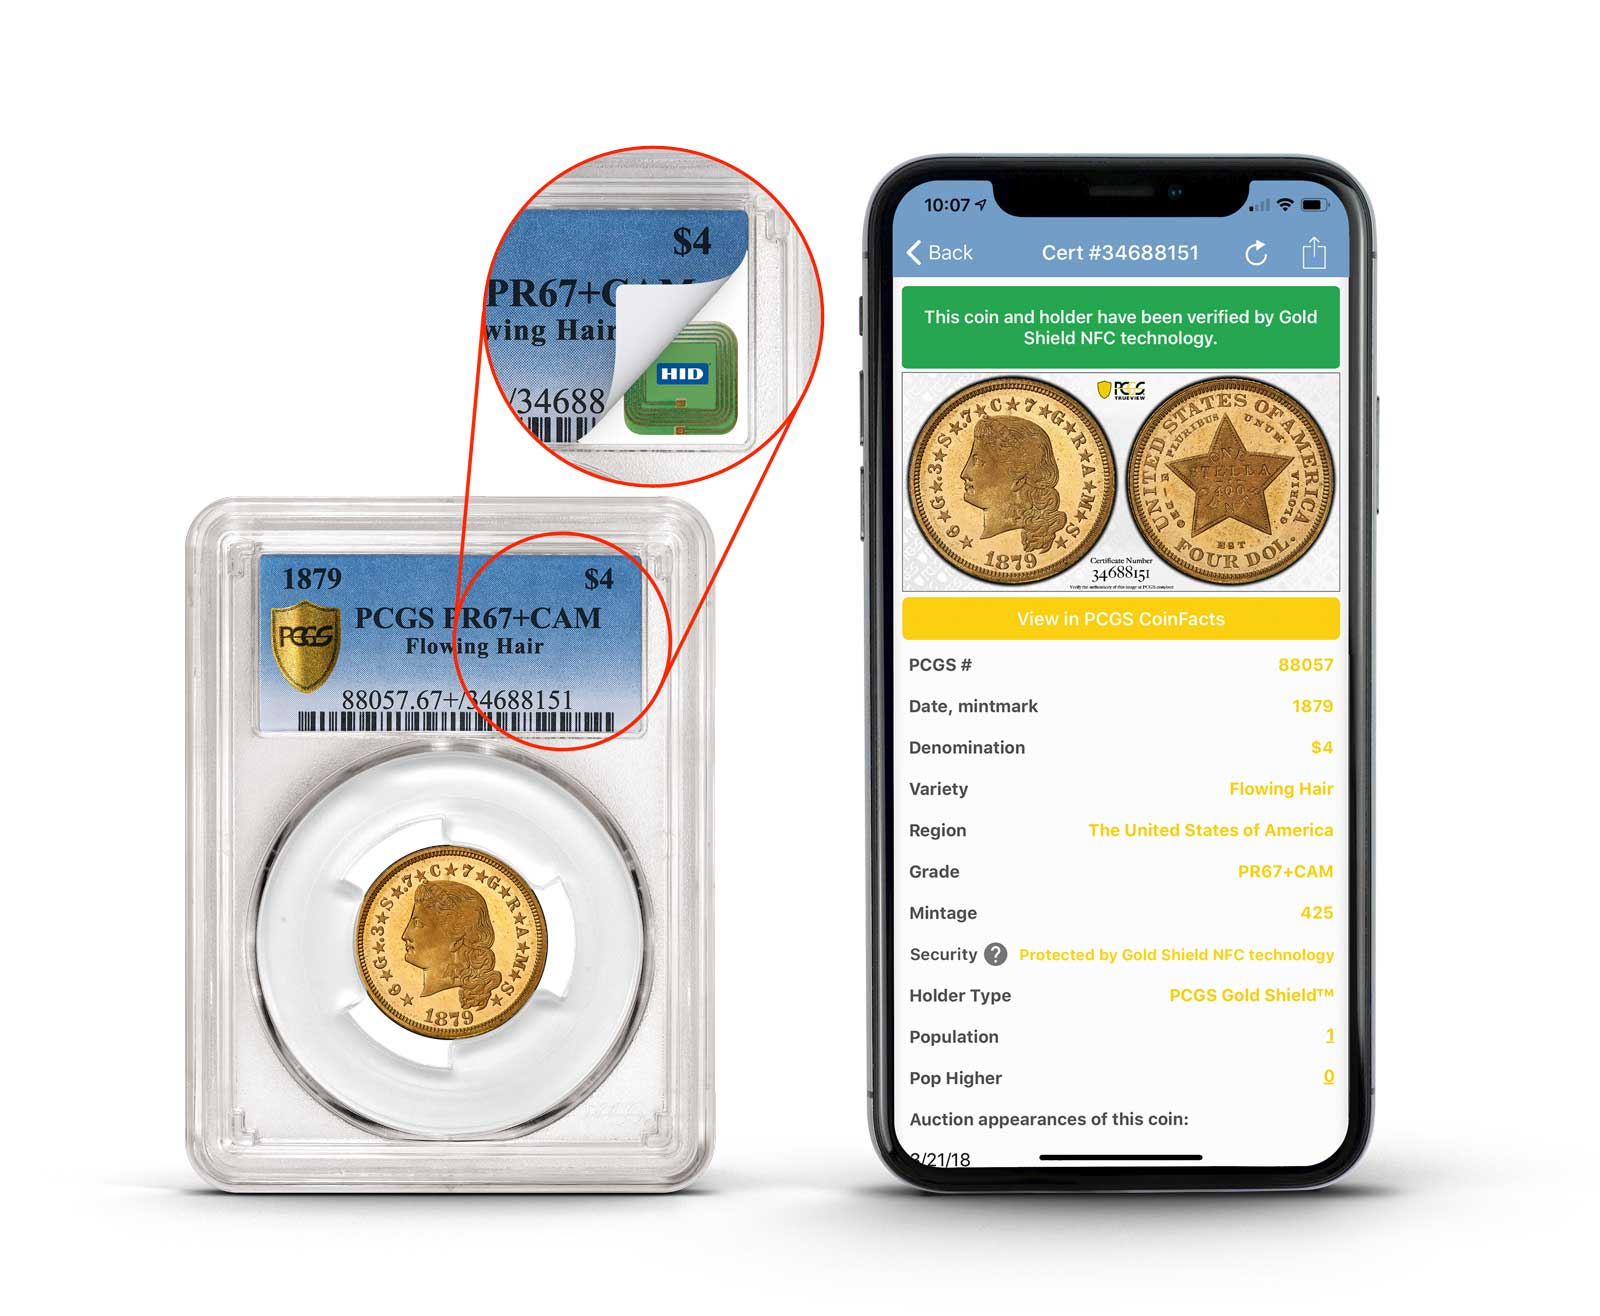 mockup of the new NFC-enabled PCGS slabs